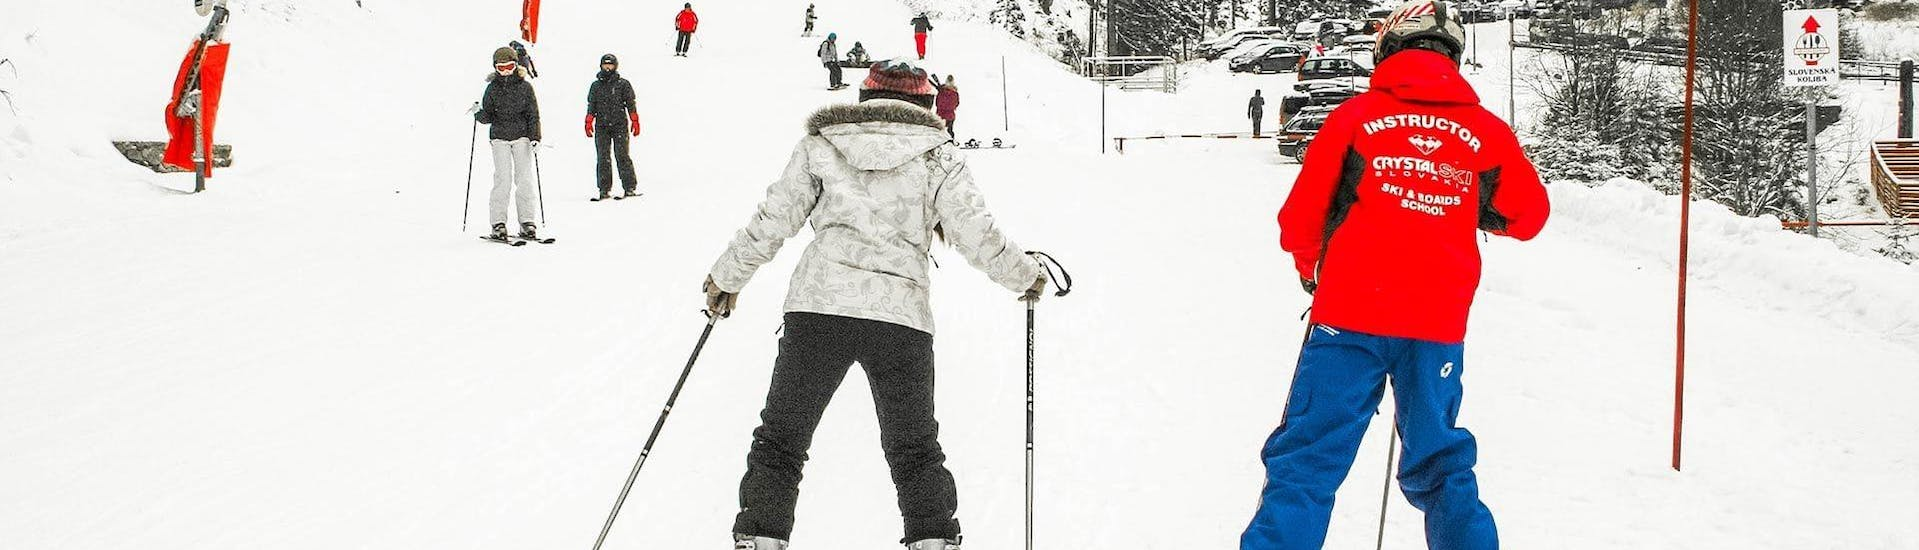 private-ski-lessons-for-adults-all-in-one-all-levels-crystal-ski-hero